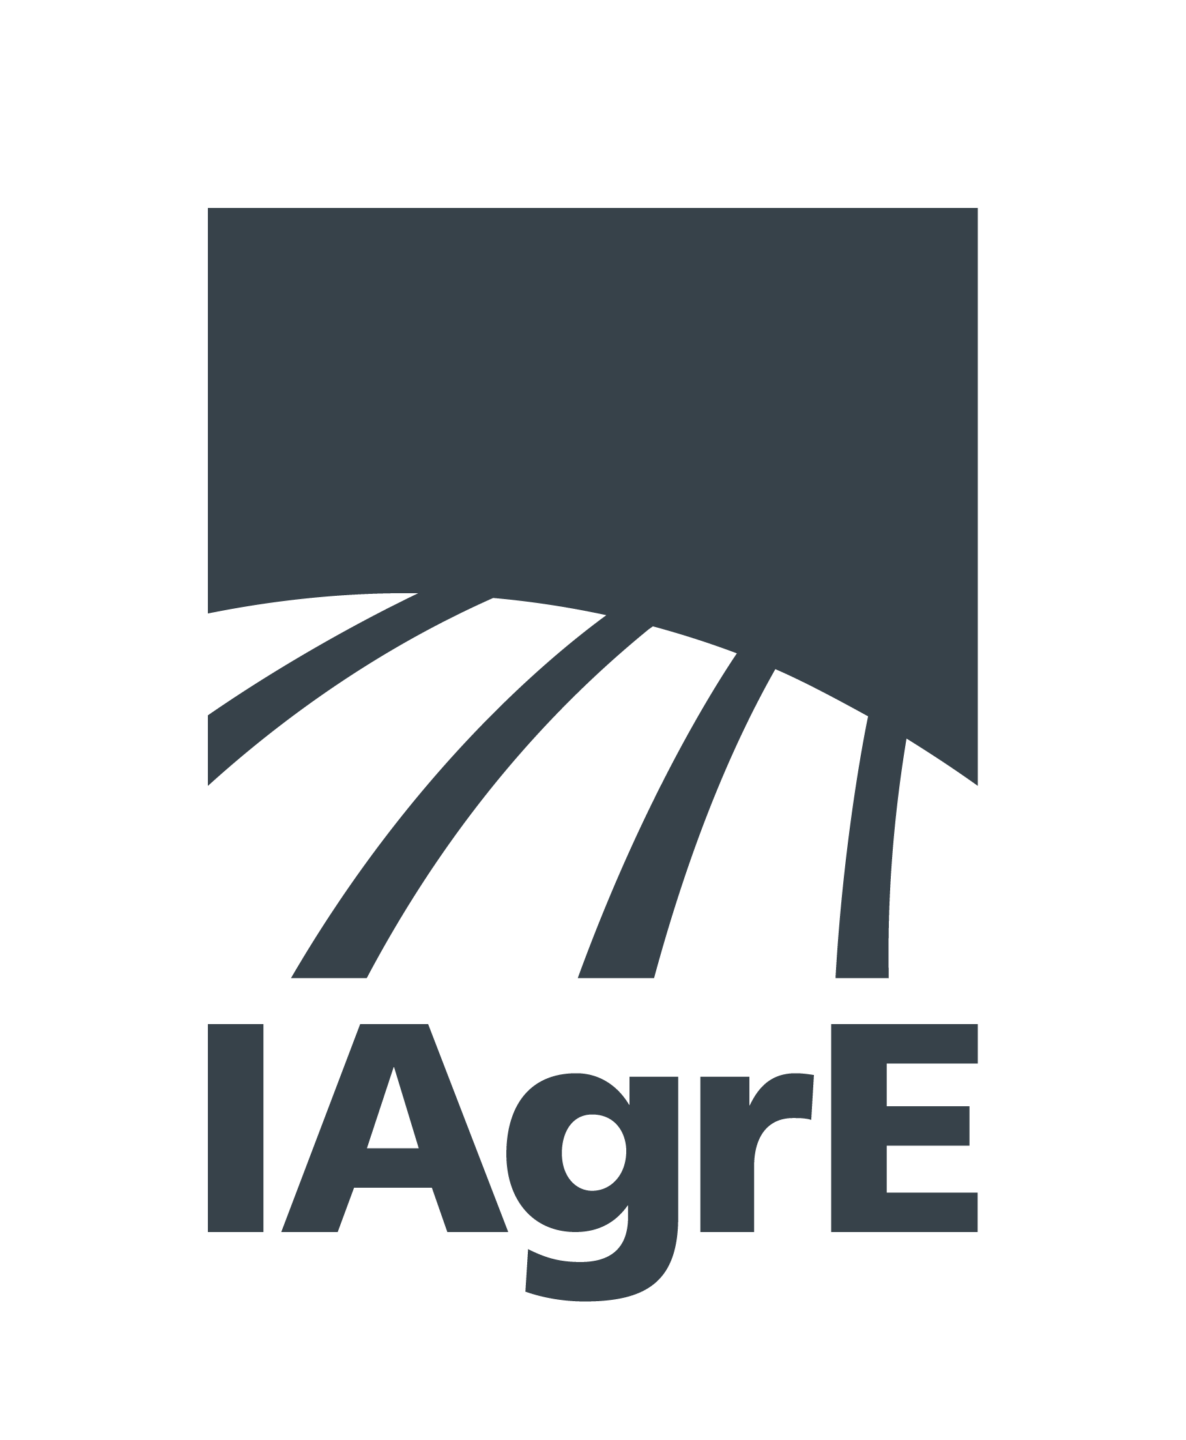 Institute for Agricultural Engineering logo